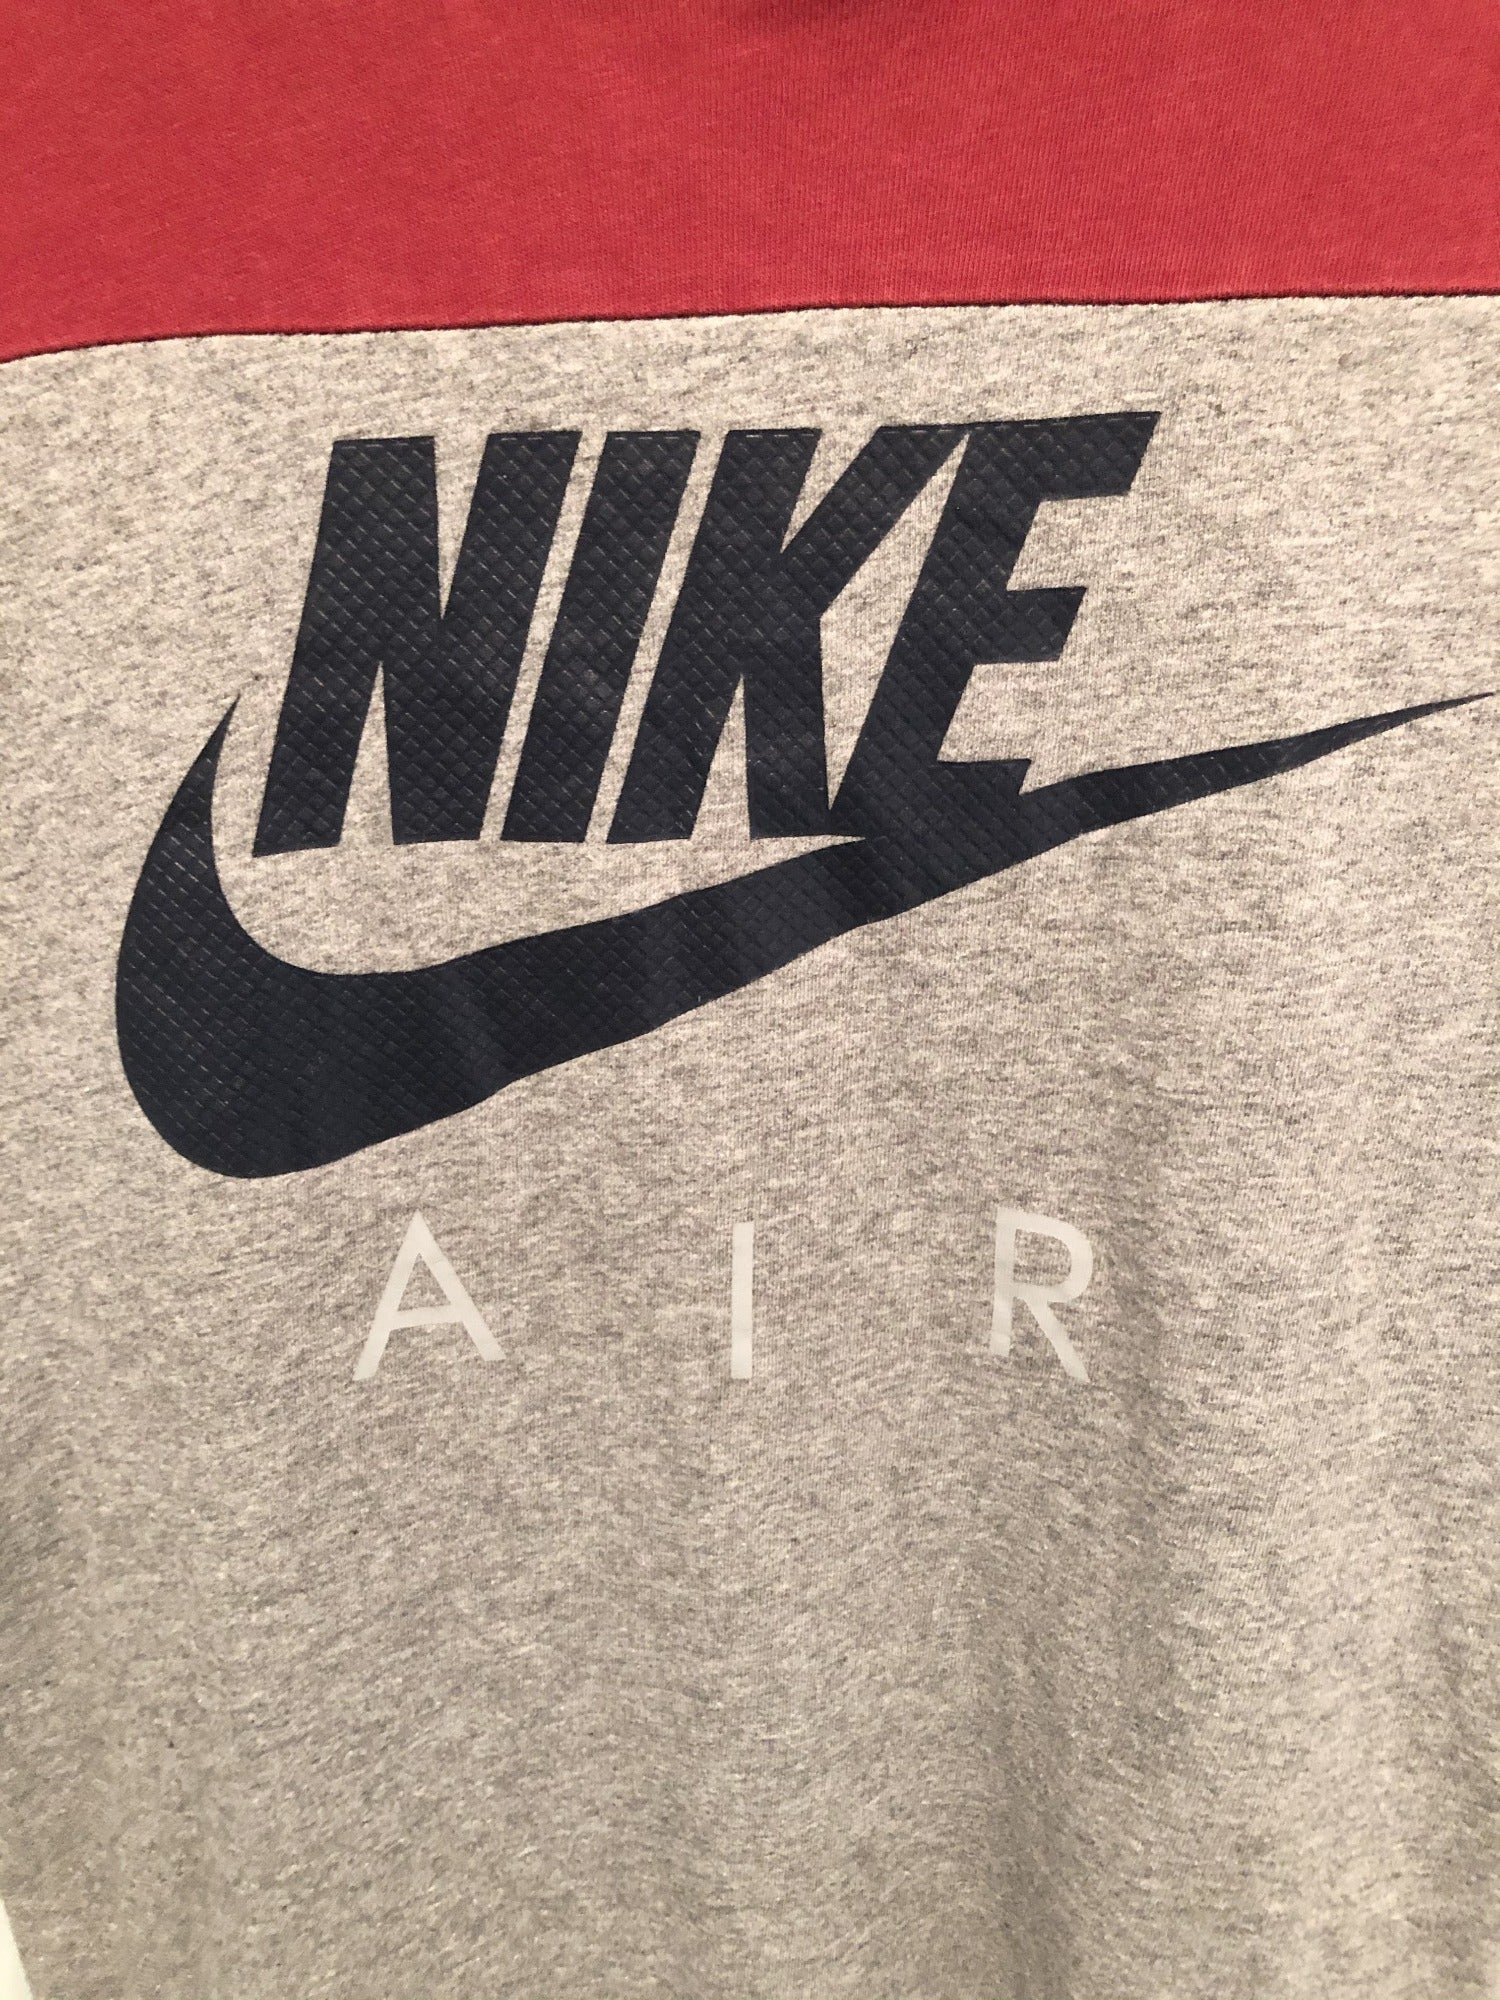 Nike Air Athletic Cut T-Shirt Red and Grey - Size S - Urban Village Vintage Sportswear